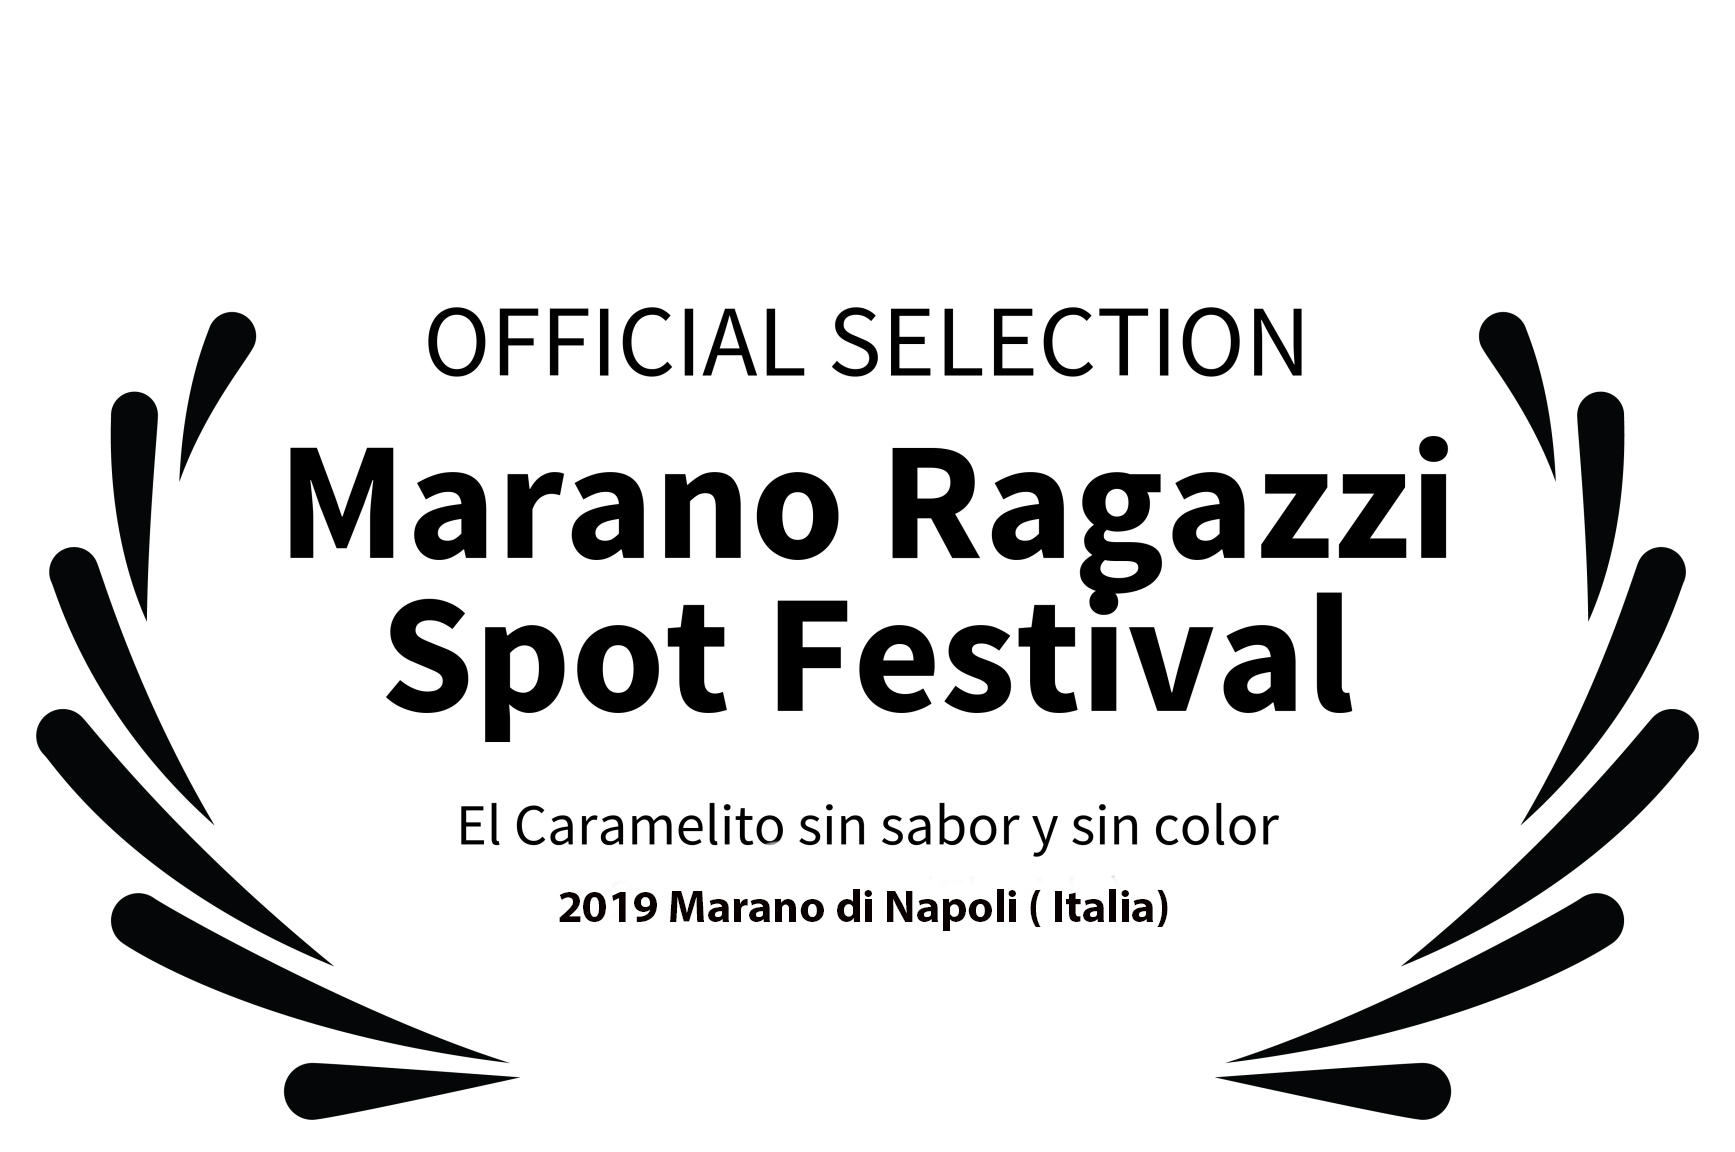 OFFICIAL SELECTION - Marano Ragazzi Spot